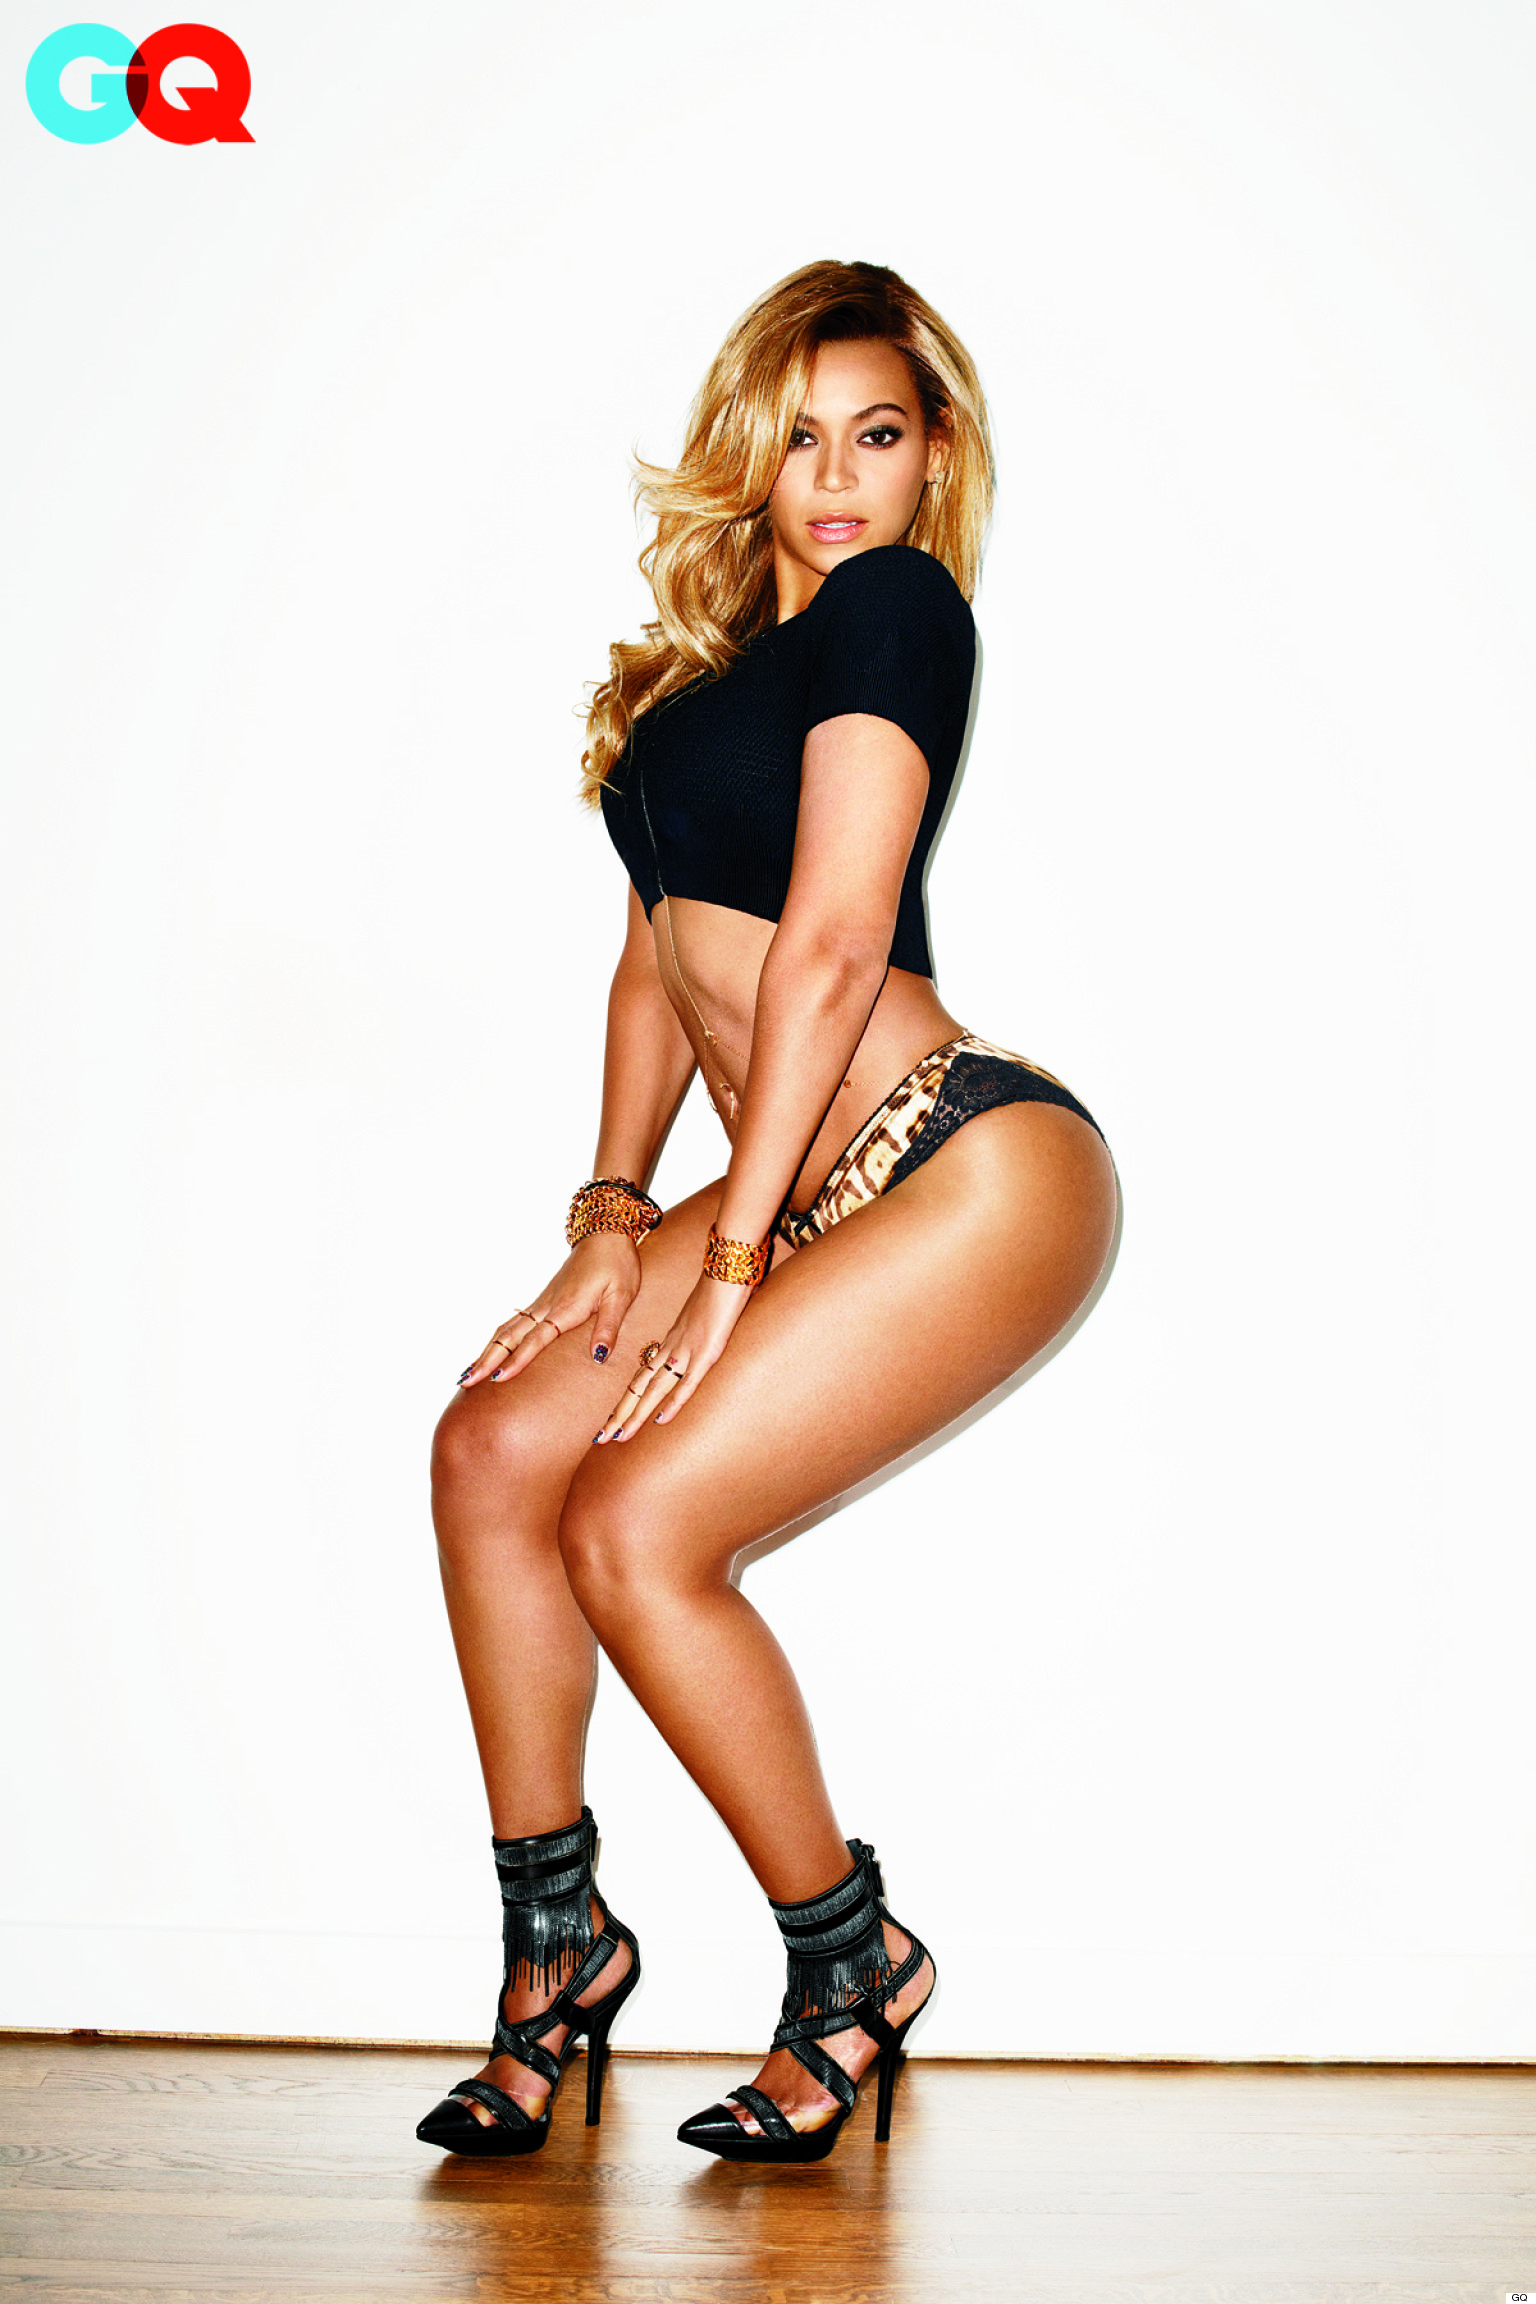 Beyonce's GQ Magazine Interview: Singer Talks Confidence